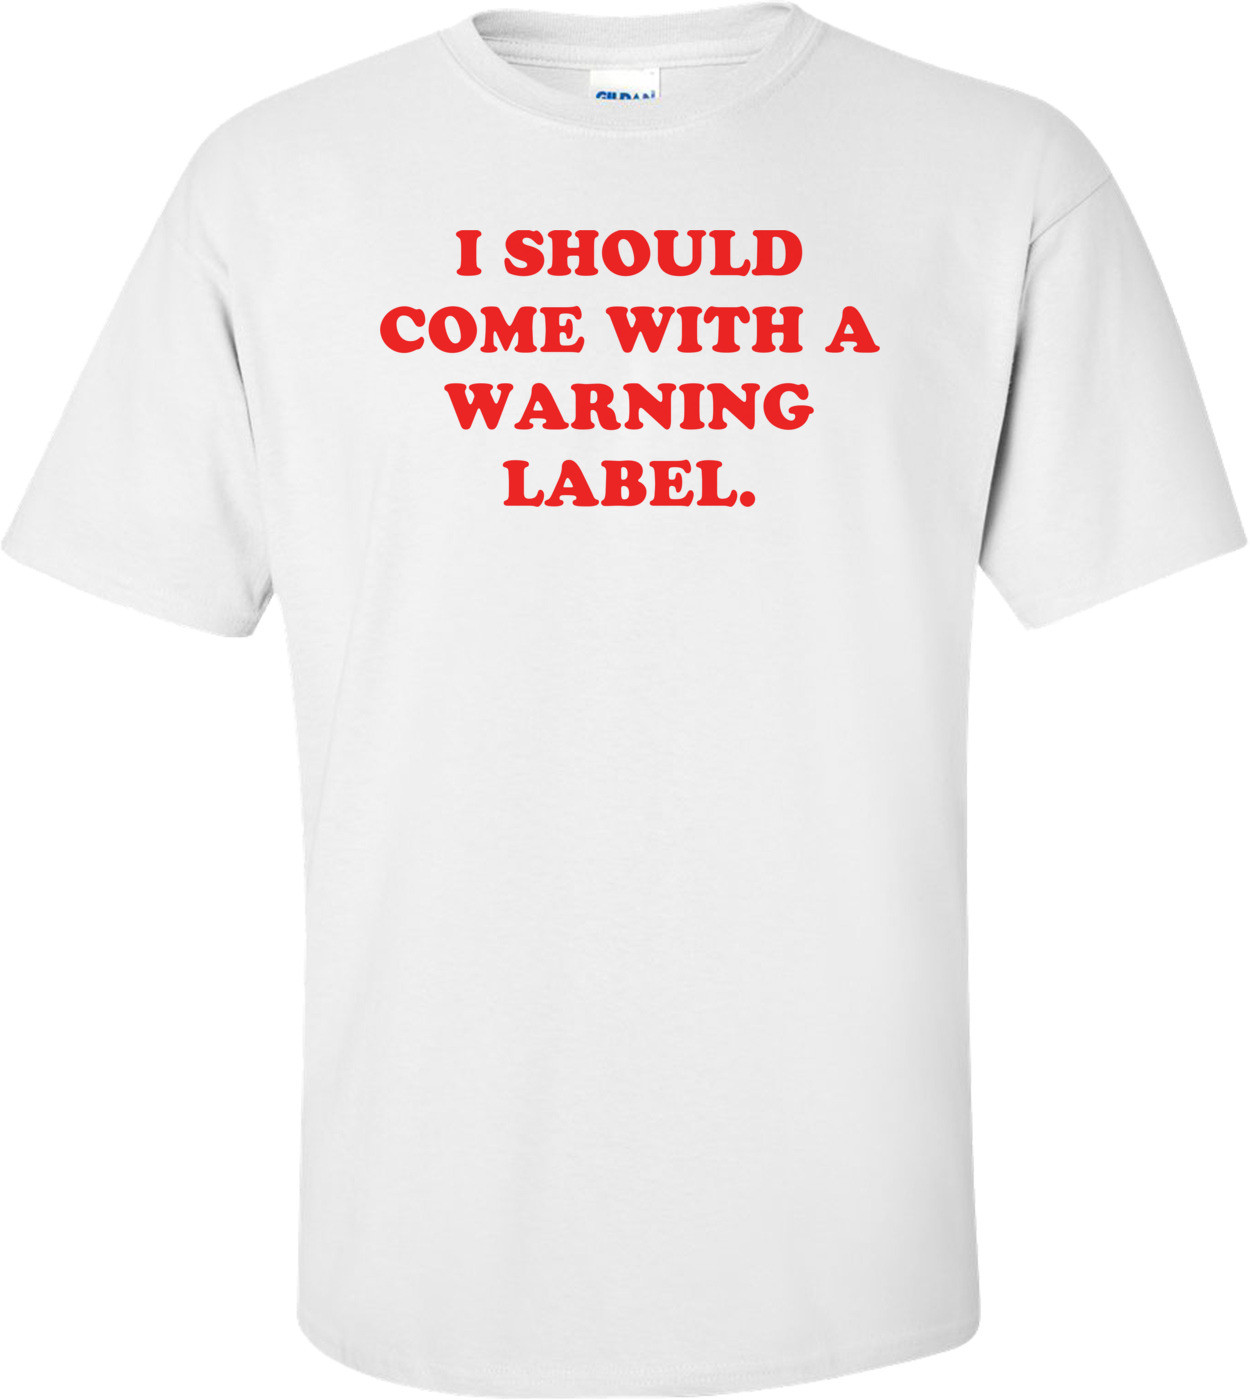 I SHOULD COME WITH A WARNING LABEL. Shirt